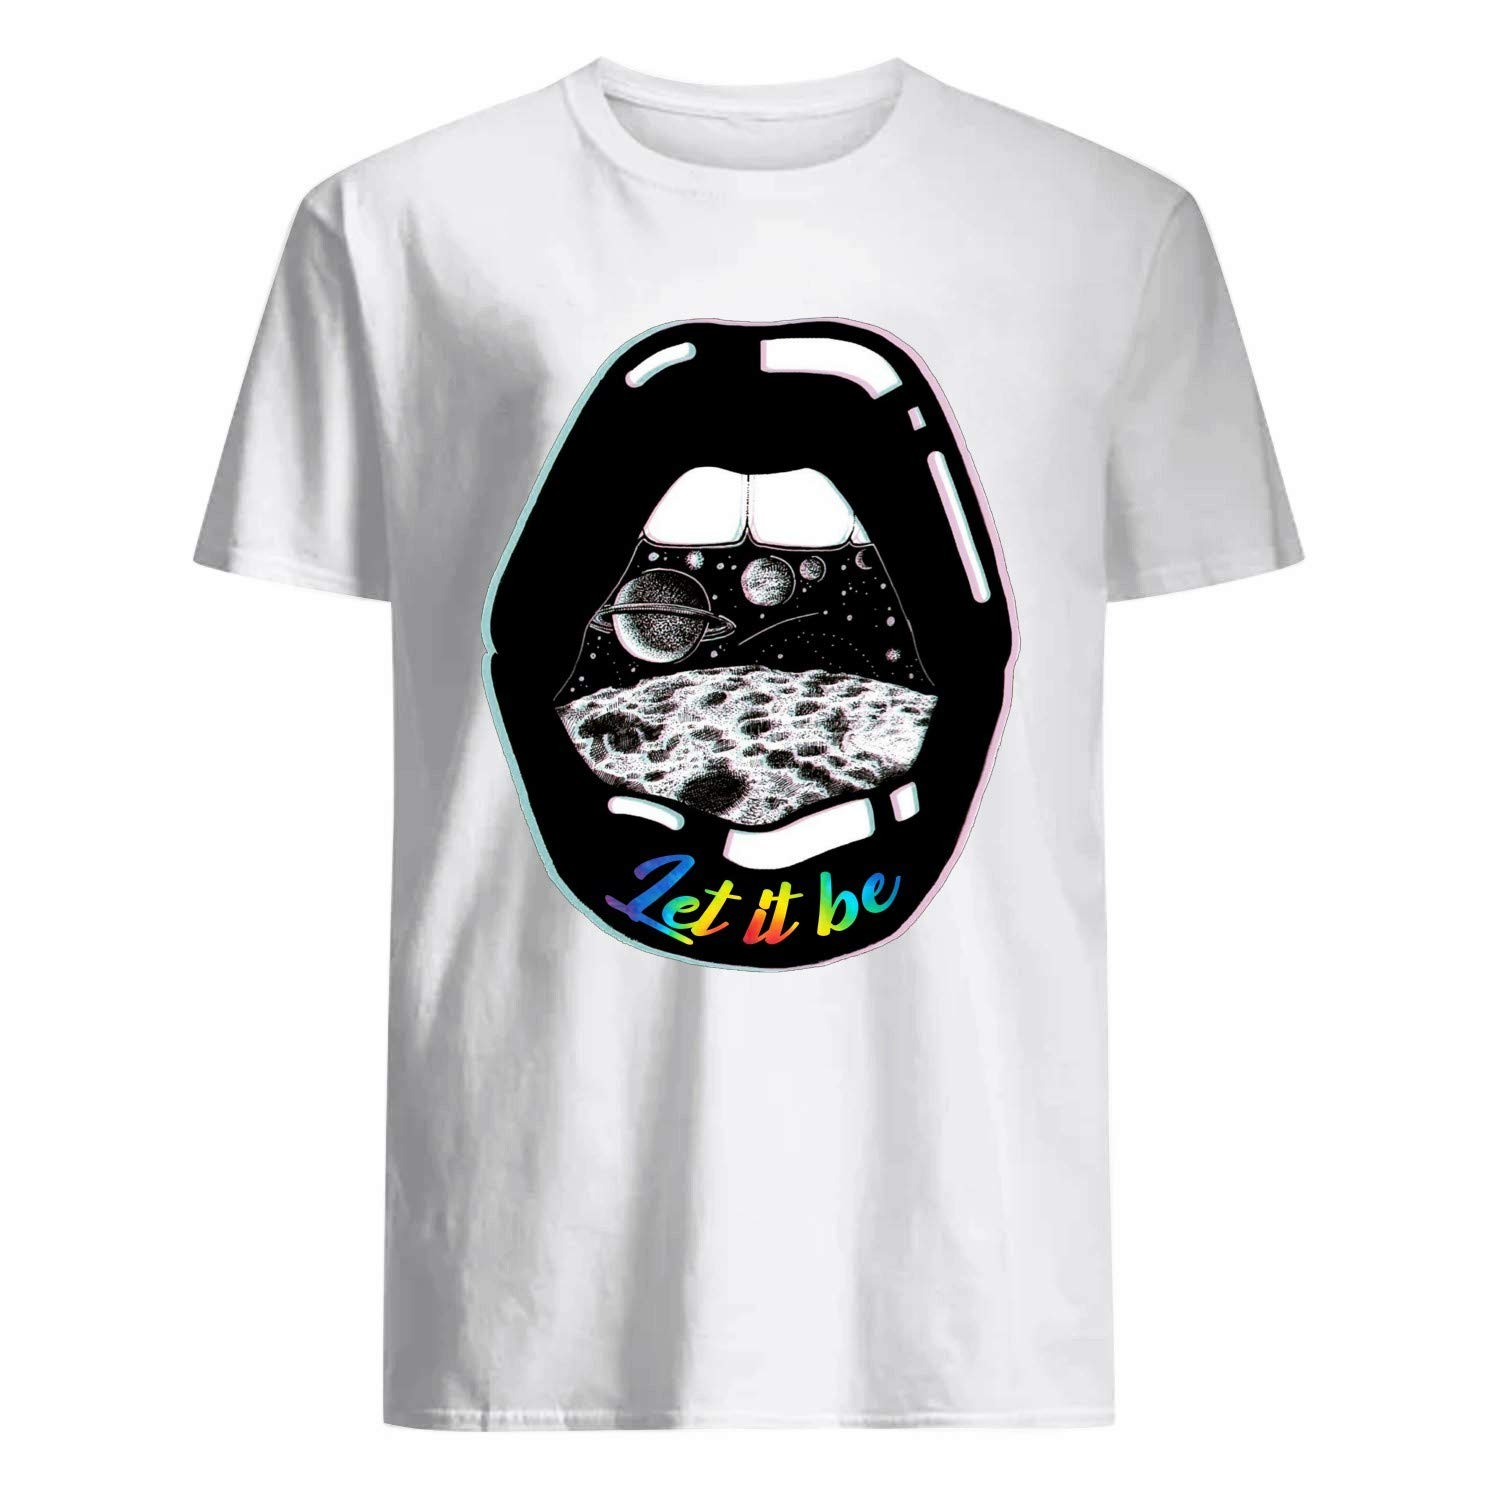 Usa 80s Tee Let It Be Space Lips Black Hippie Shirt